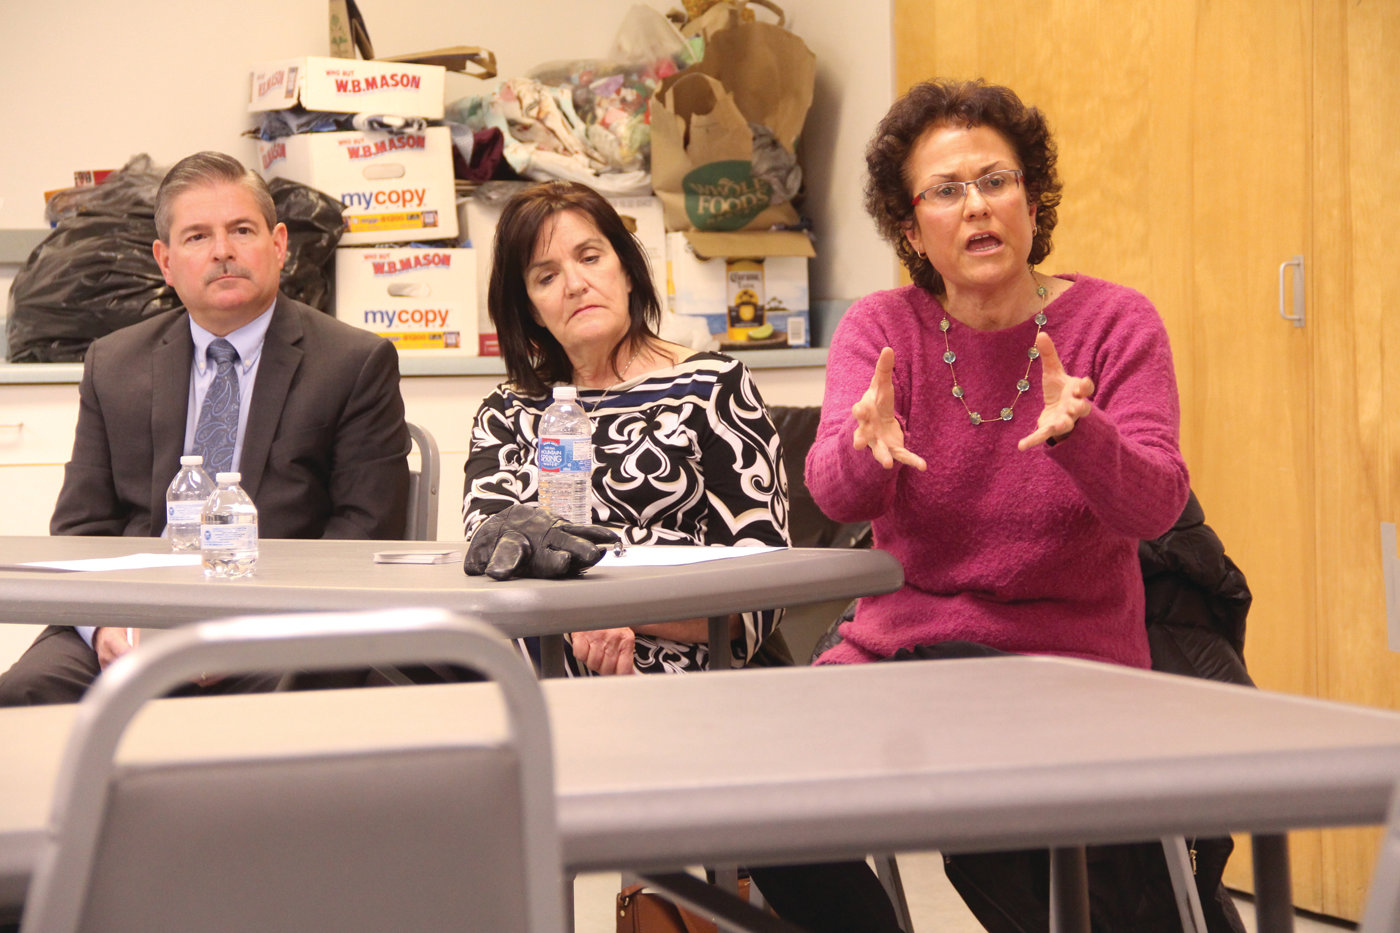 GETTING ACROSS THEIR POINTS OF VIEW: Candidates for chair of the Rhode Island Republican Party (from left) Kenneth Mendonça, Sue Cienki and Rebecca Schiff at Thursday's forum hosted by the Warwick GOP.